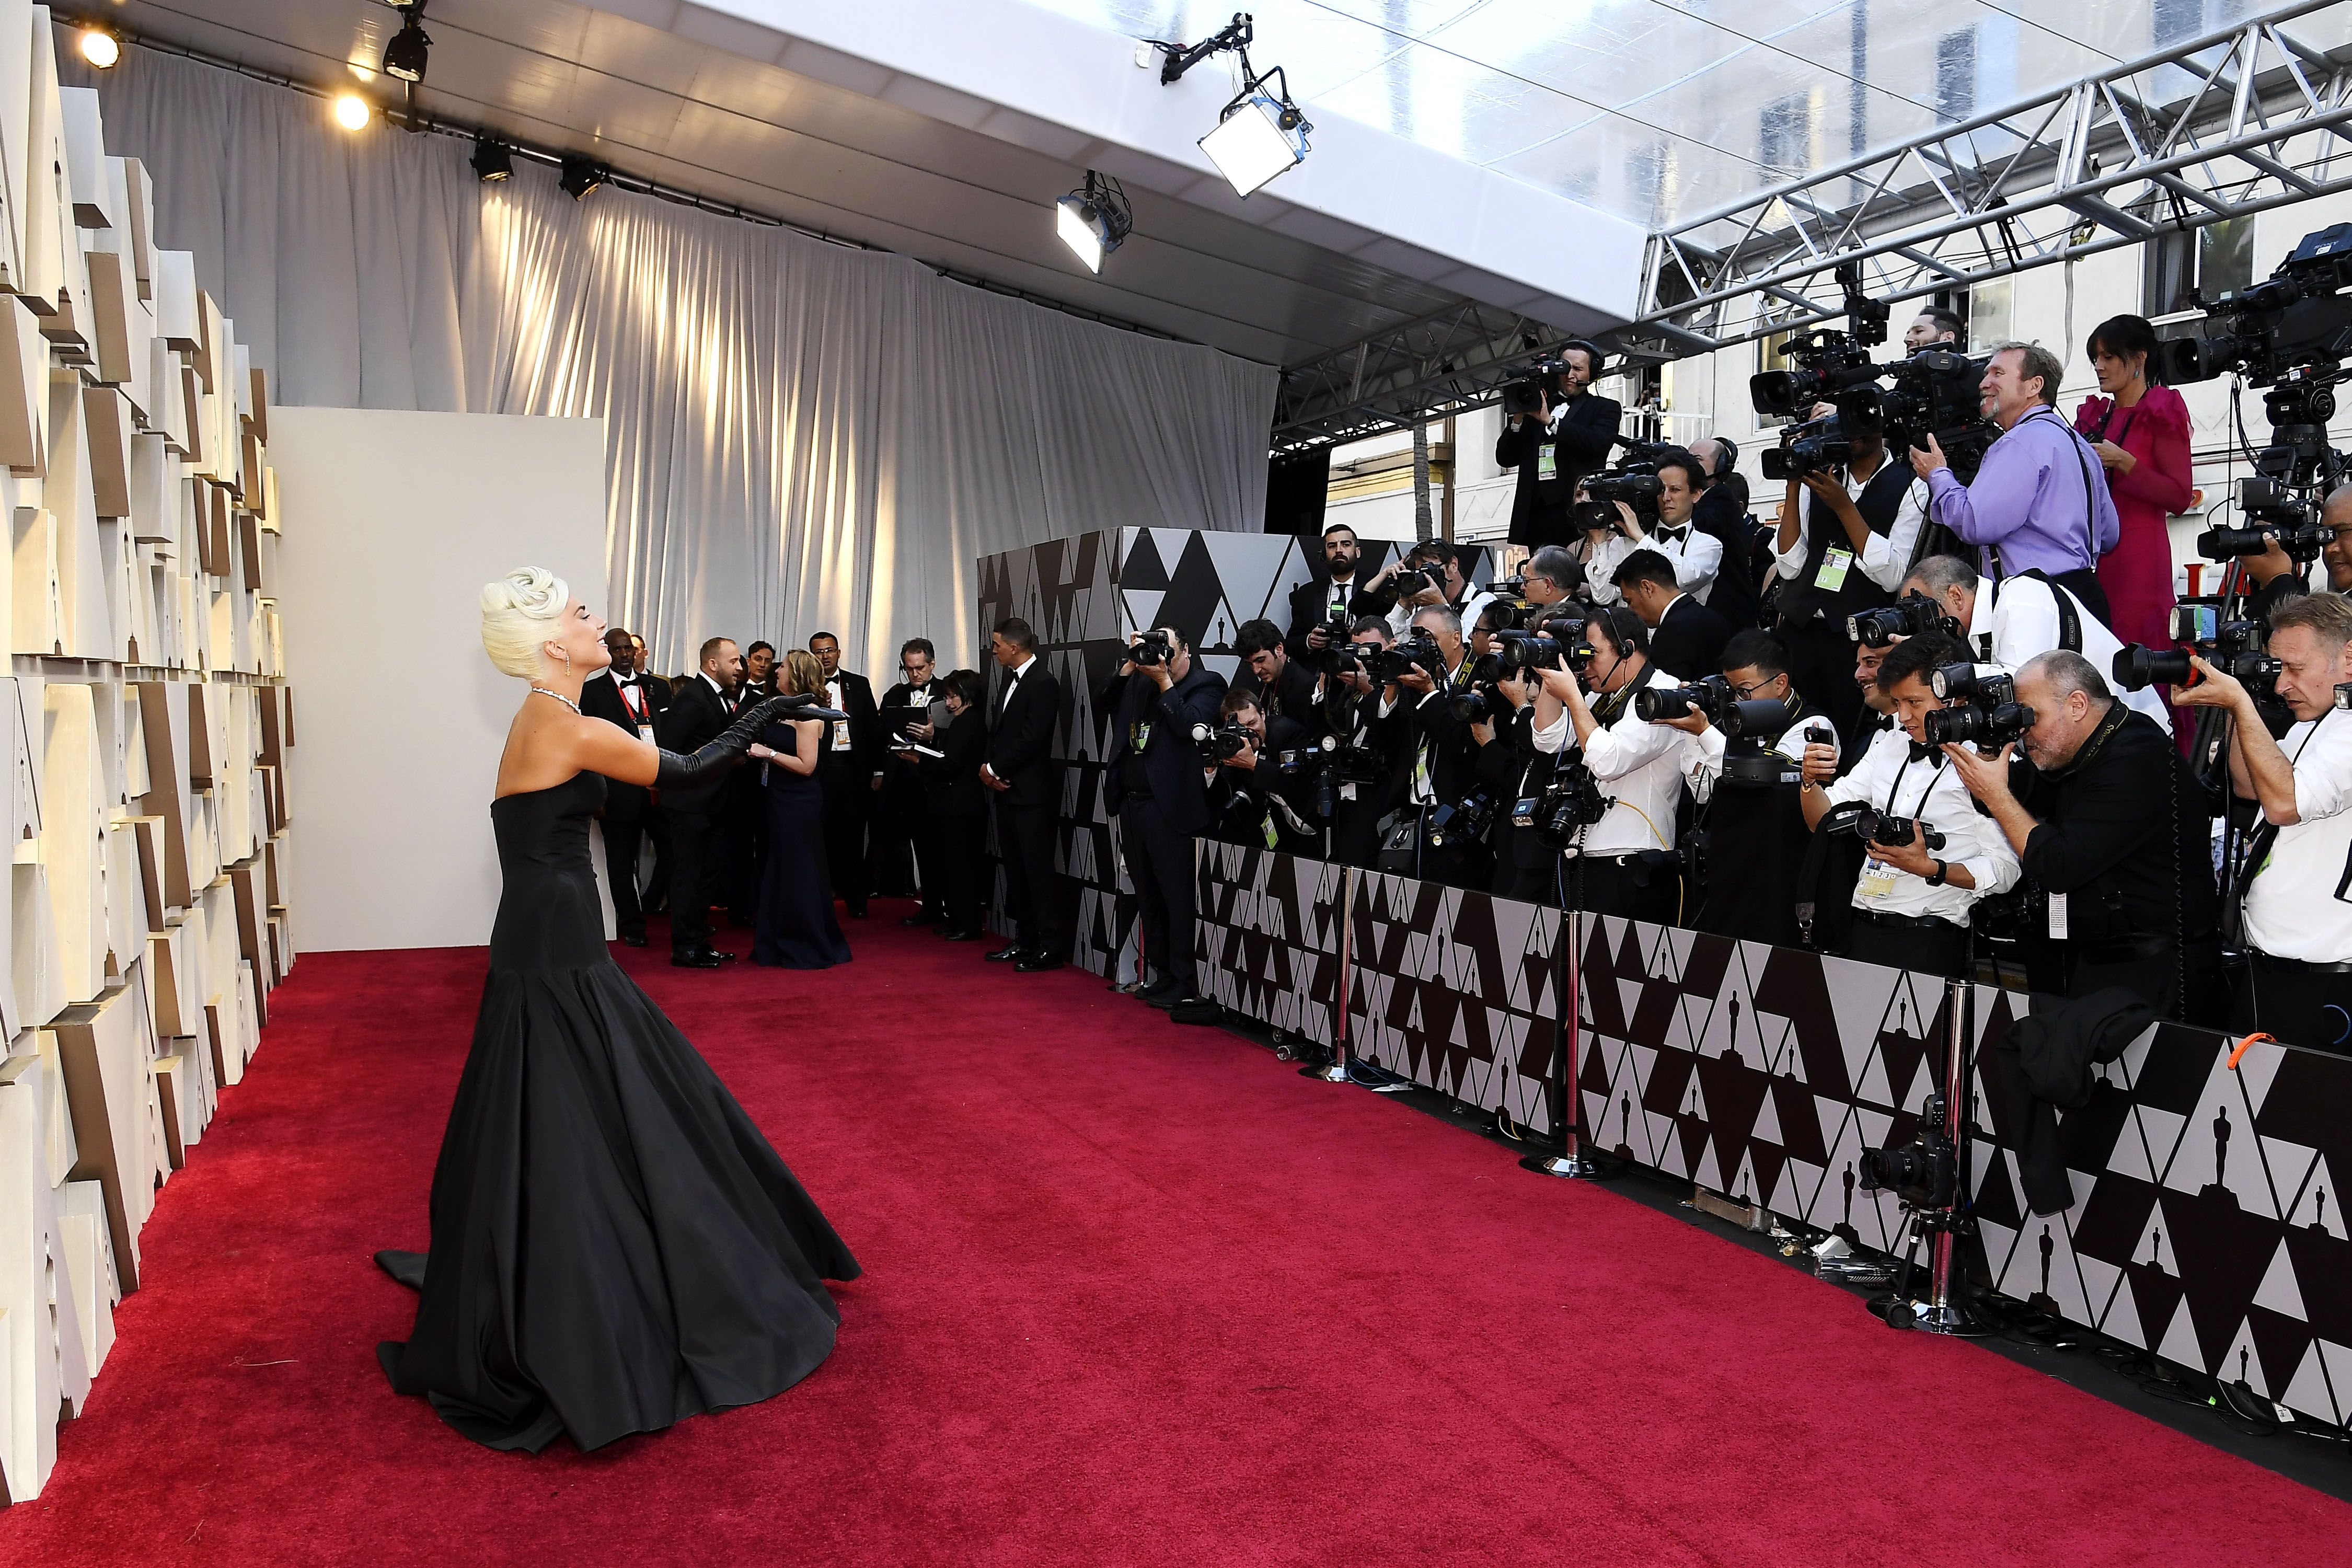 The Oscars Red Carpet Is An Exclusive